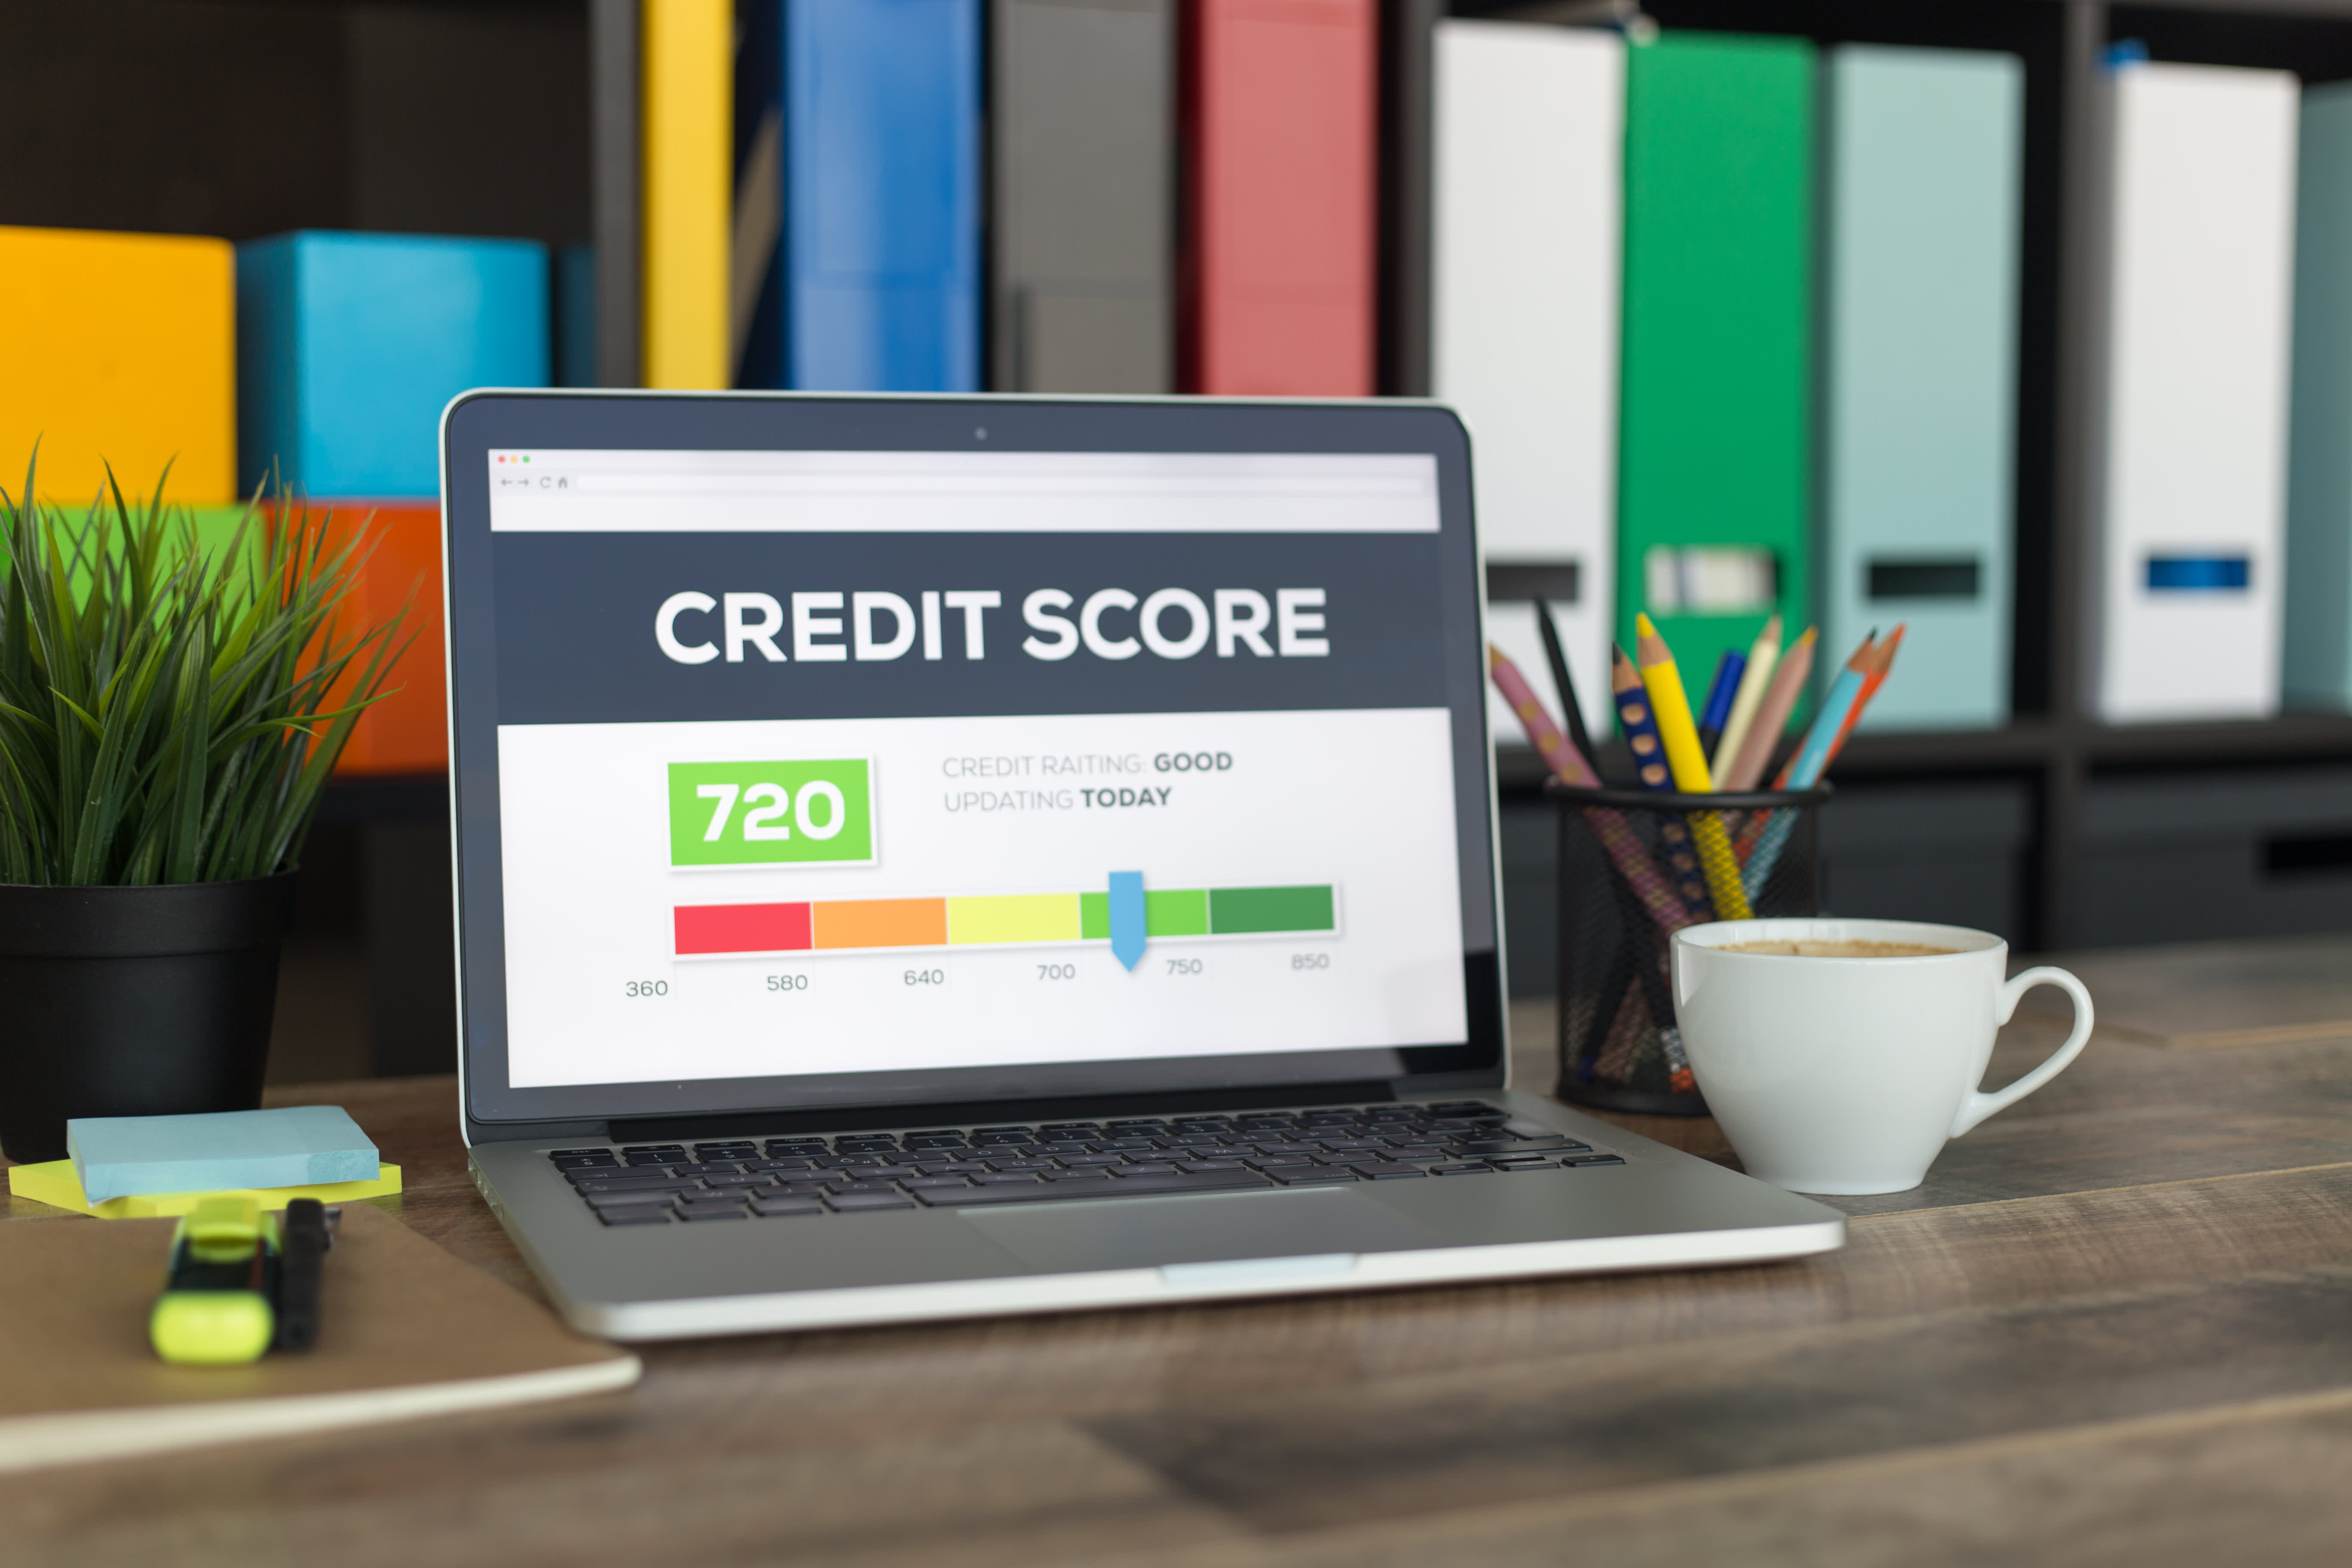 93% of millennials are aware of their credit score, according to Discover's Credit Health survey